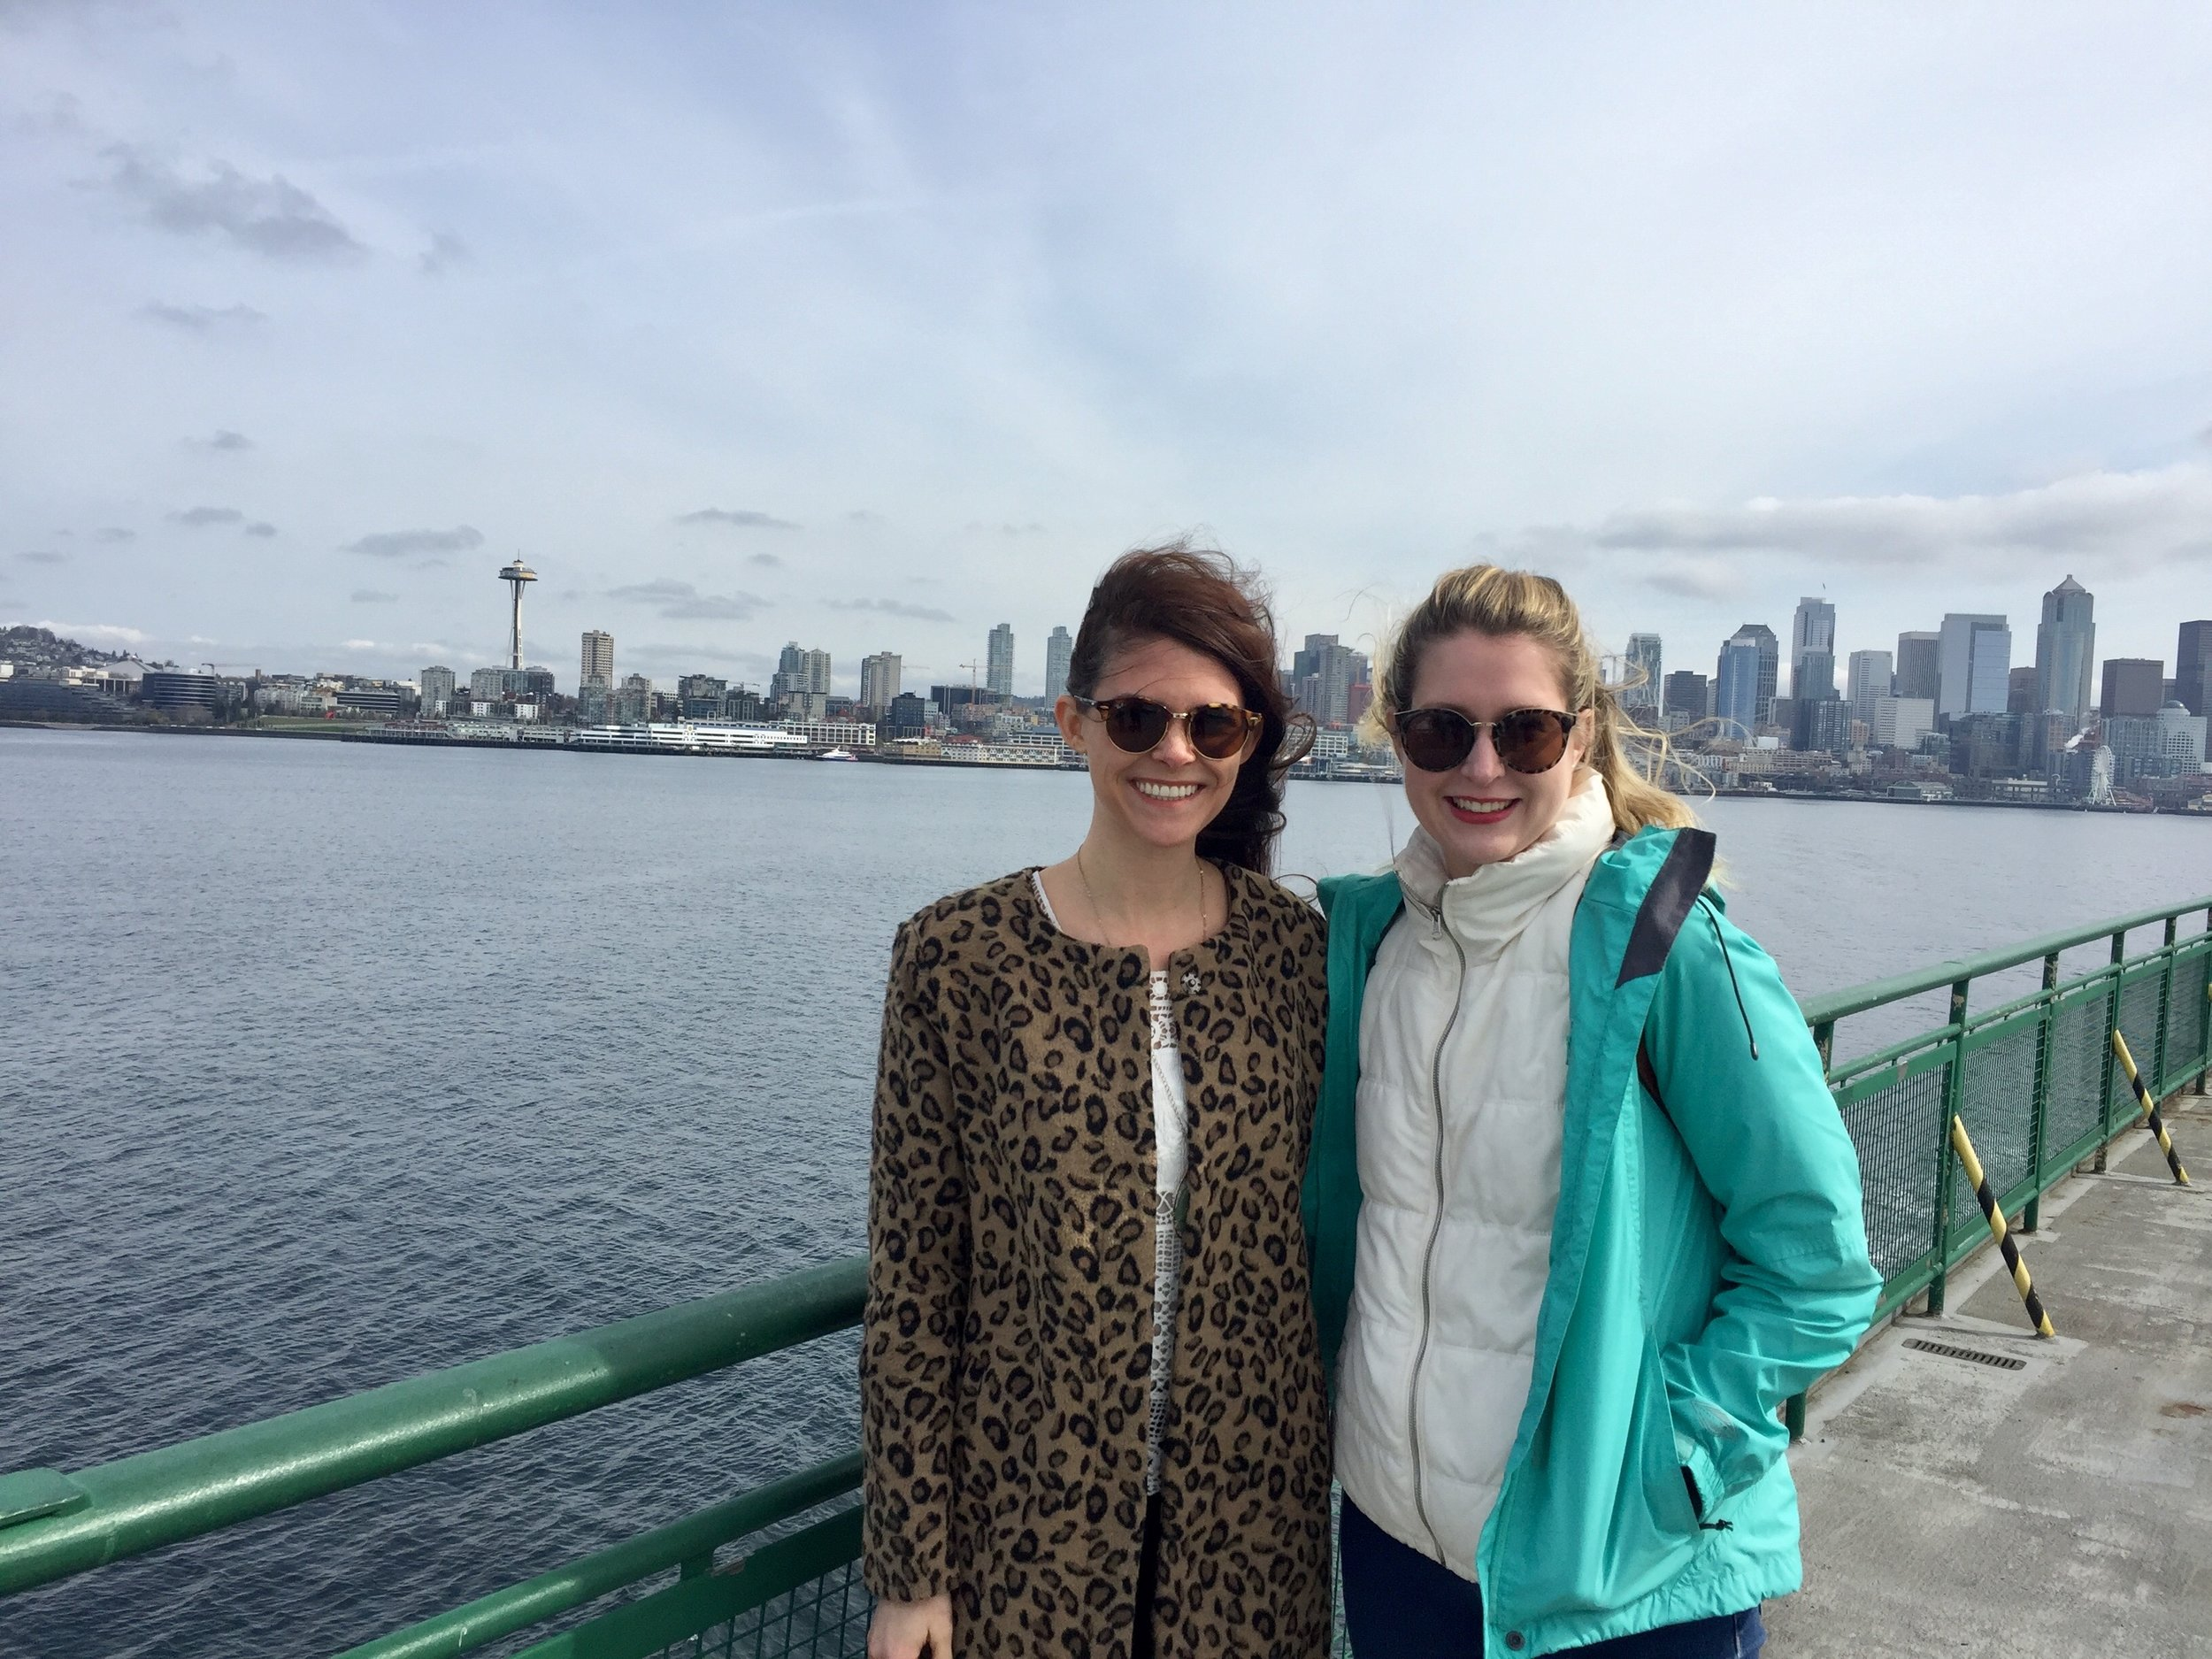 had to get a ferry pic with the space needle in the background duh.